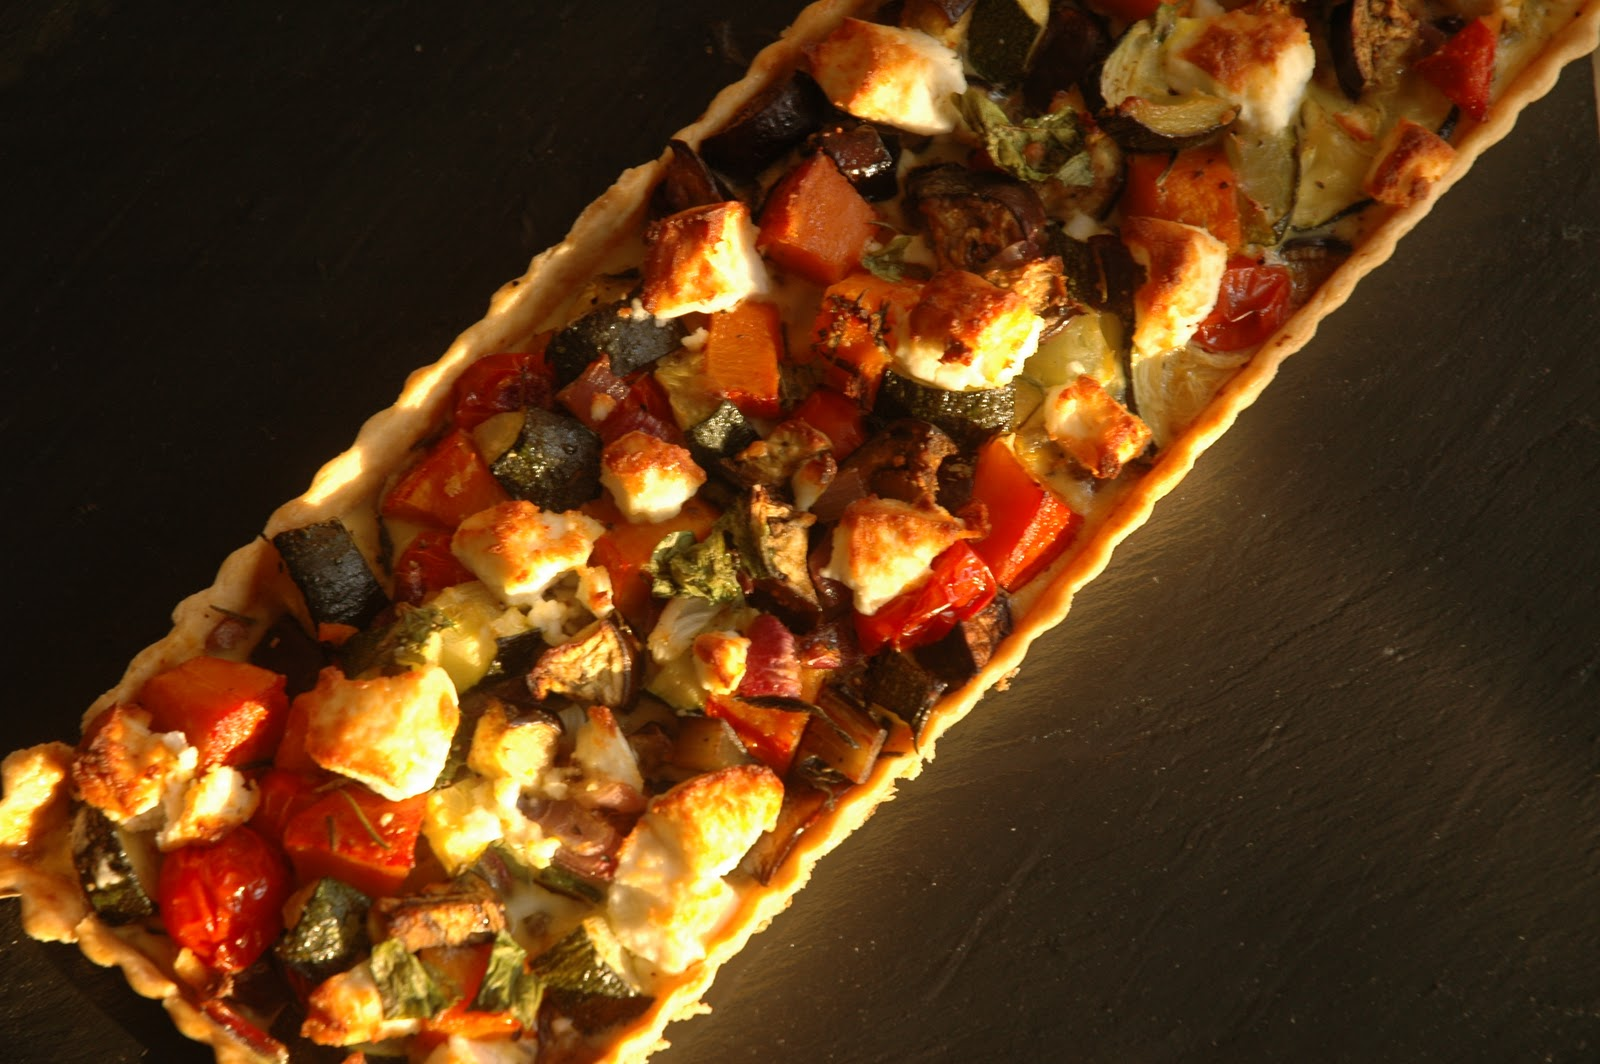 Emma's homemade: A roasted vegetable tart